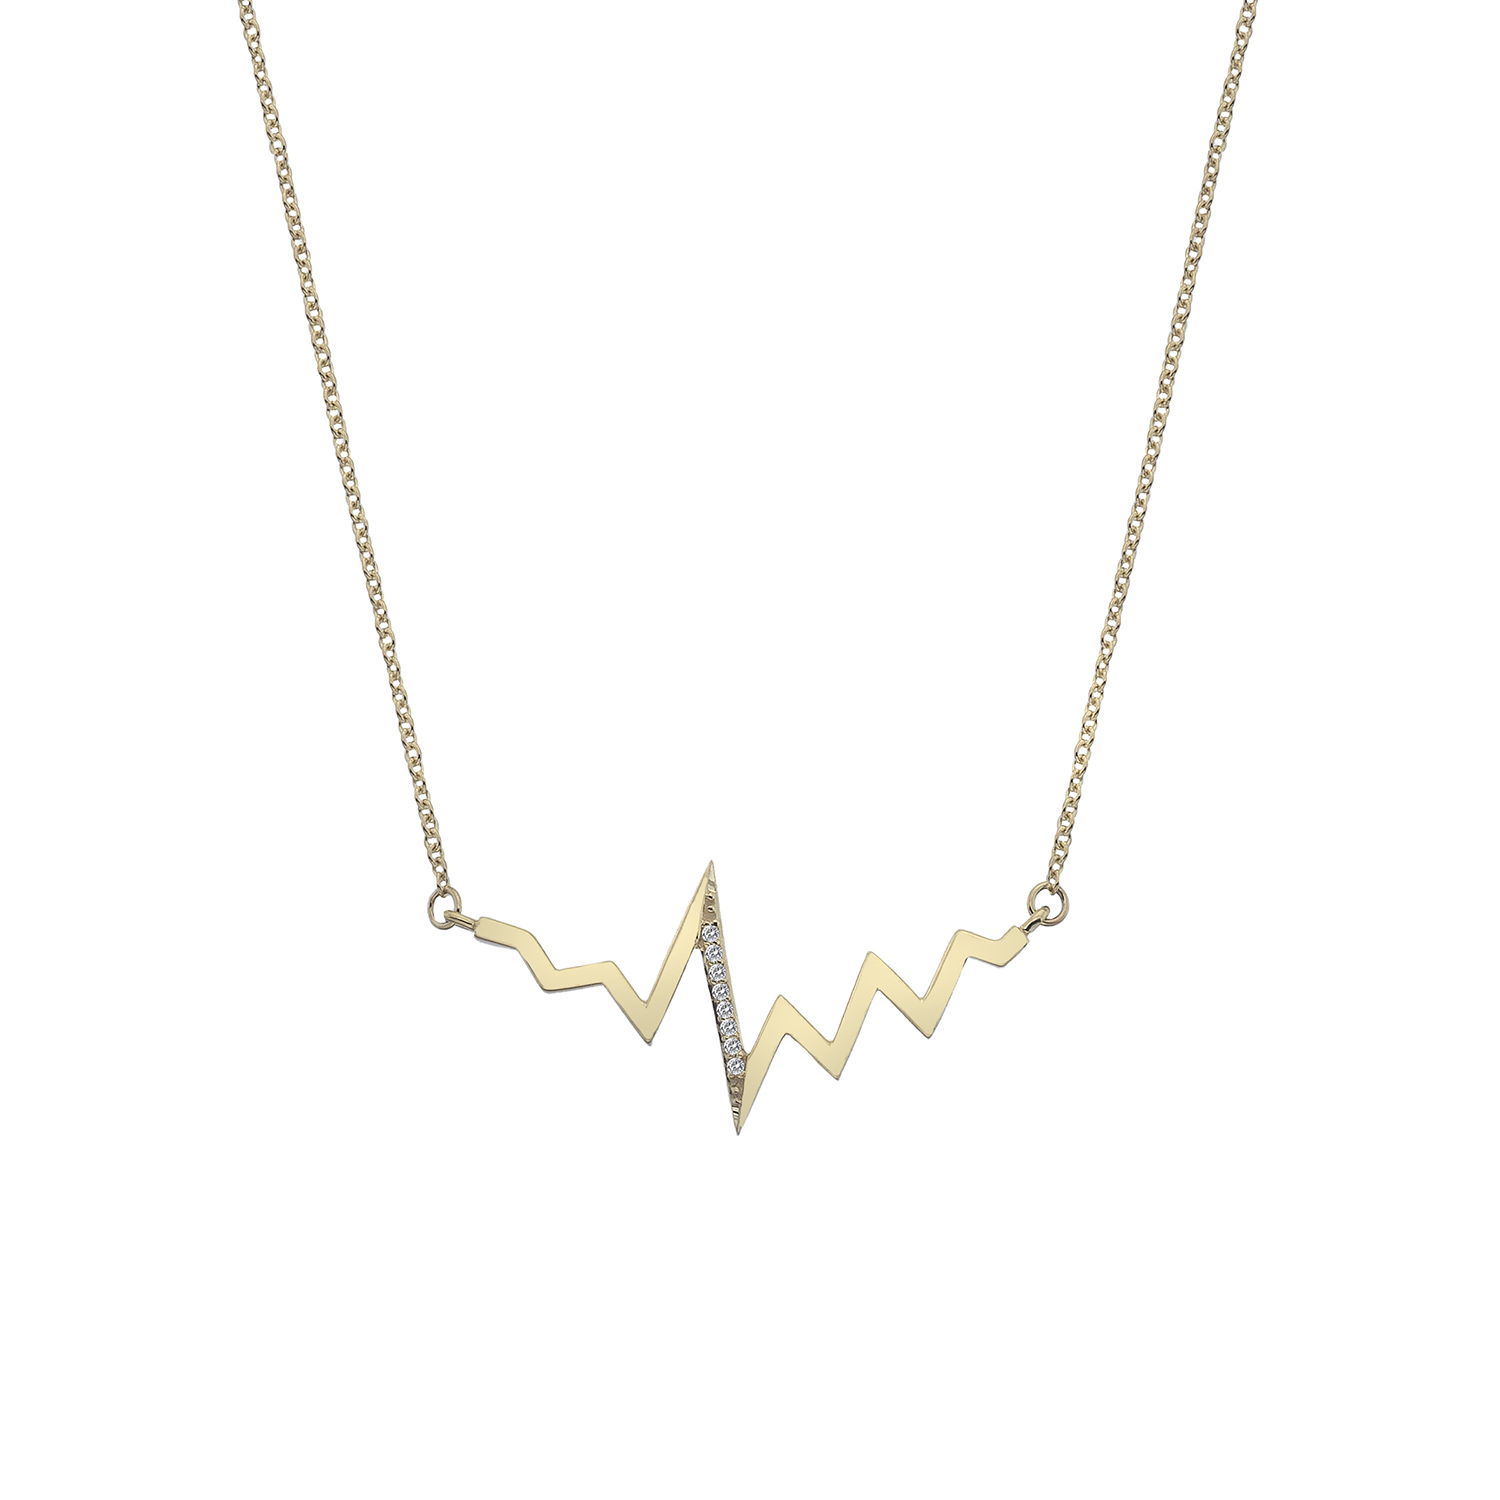 9ct yellow gold heartbeat necklace - Carats Jewellers